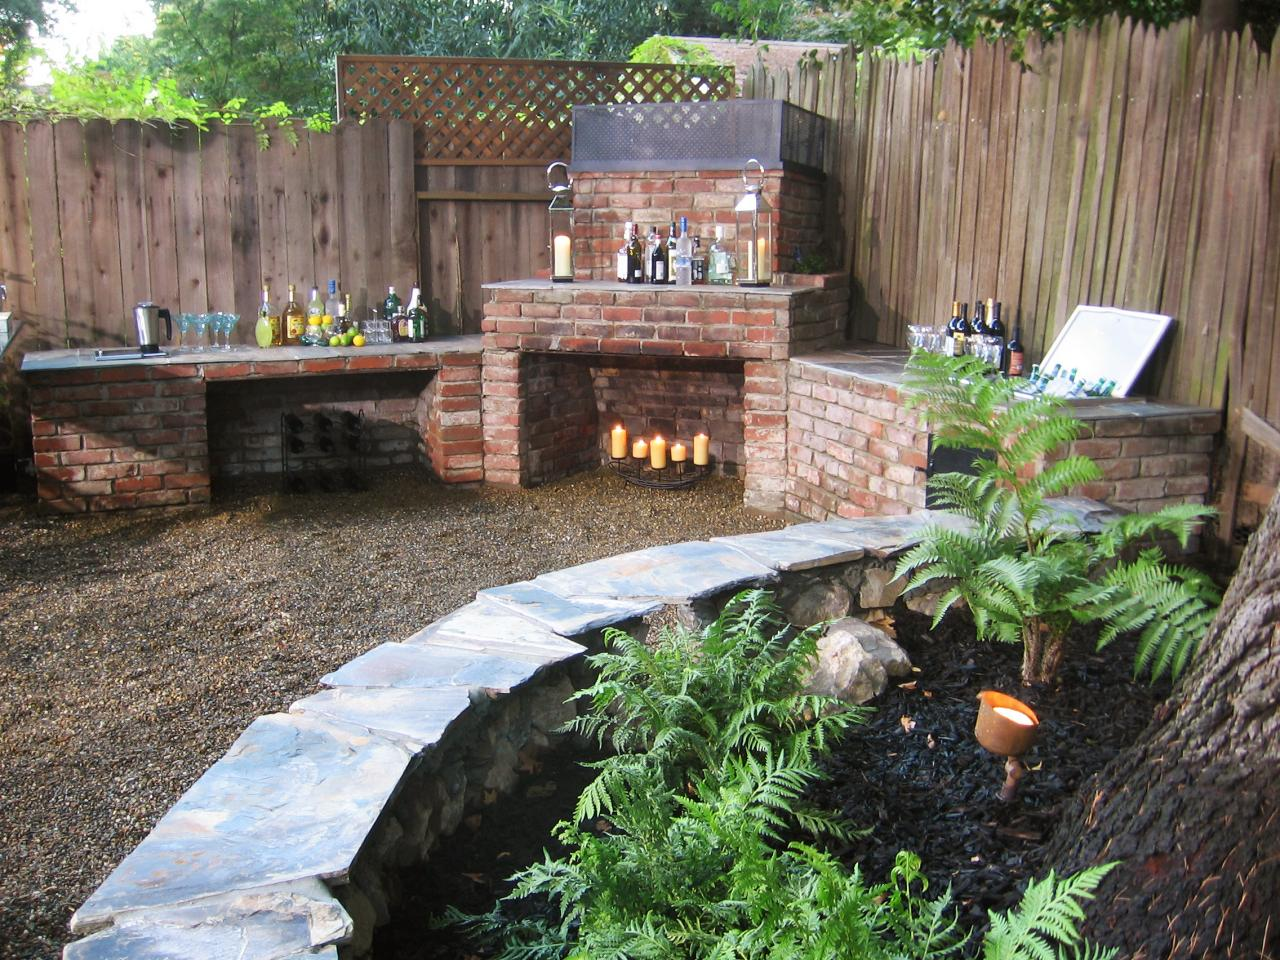 Find ideas for outdoor fire pit and fireplace designs that let you get as simple or as fancy as your time and budget allow